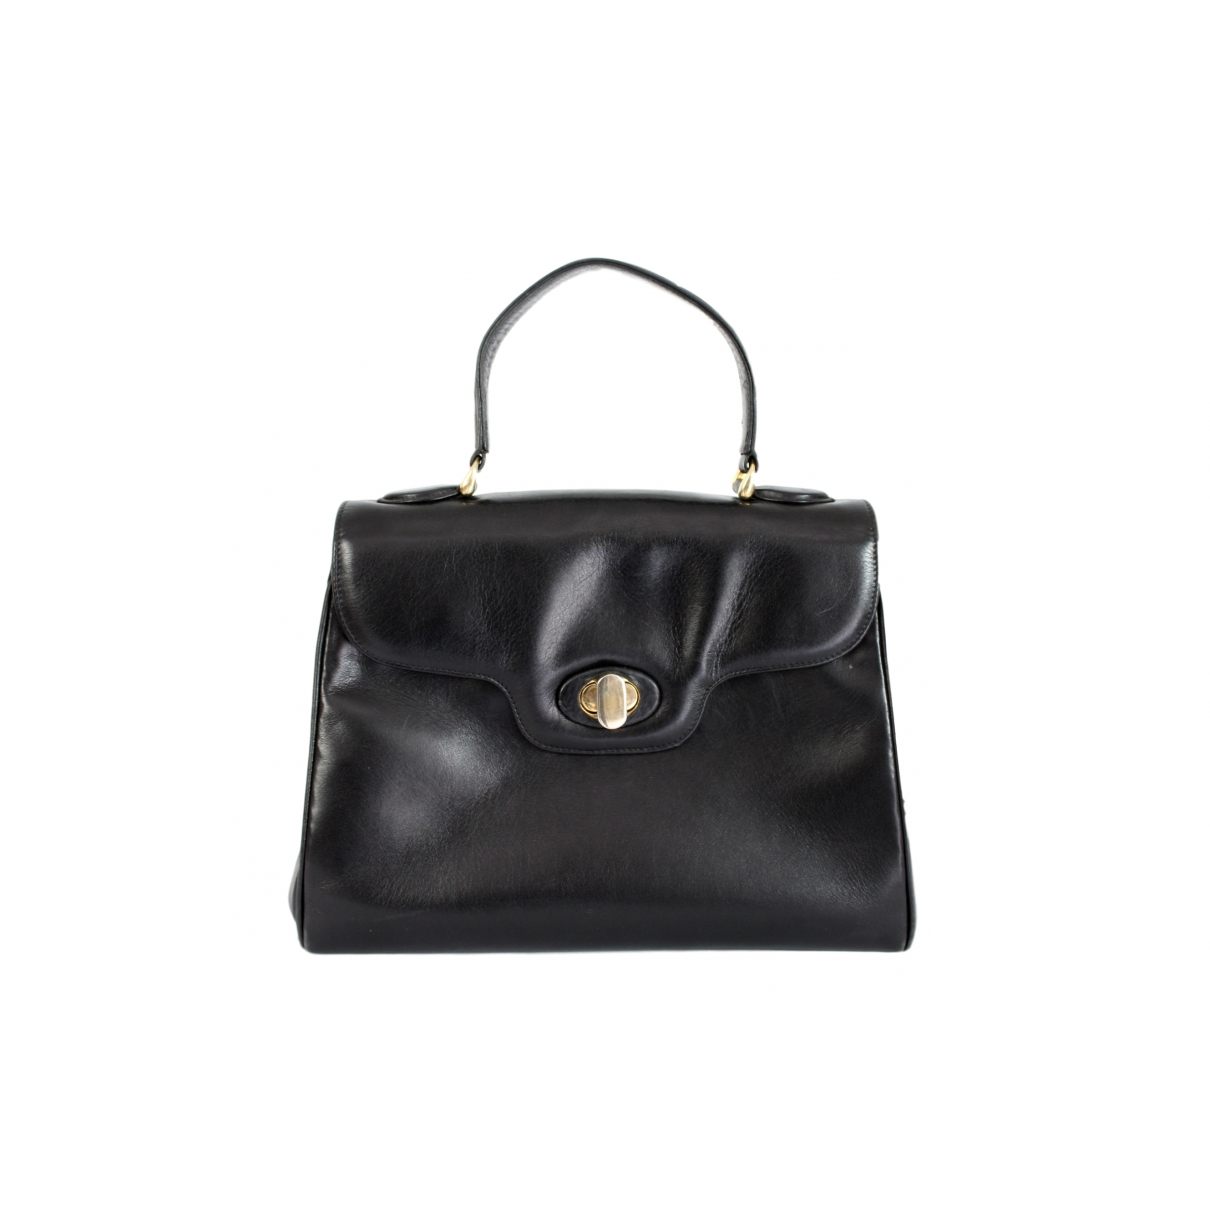 Fratelli Rossetti \N Black Leather handbag for Women \N